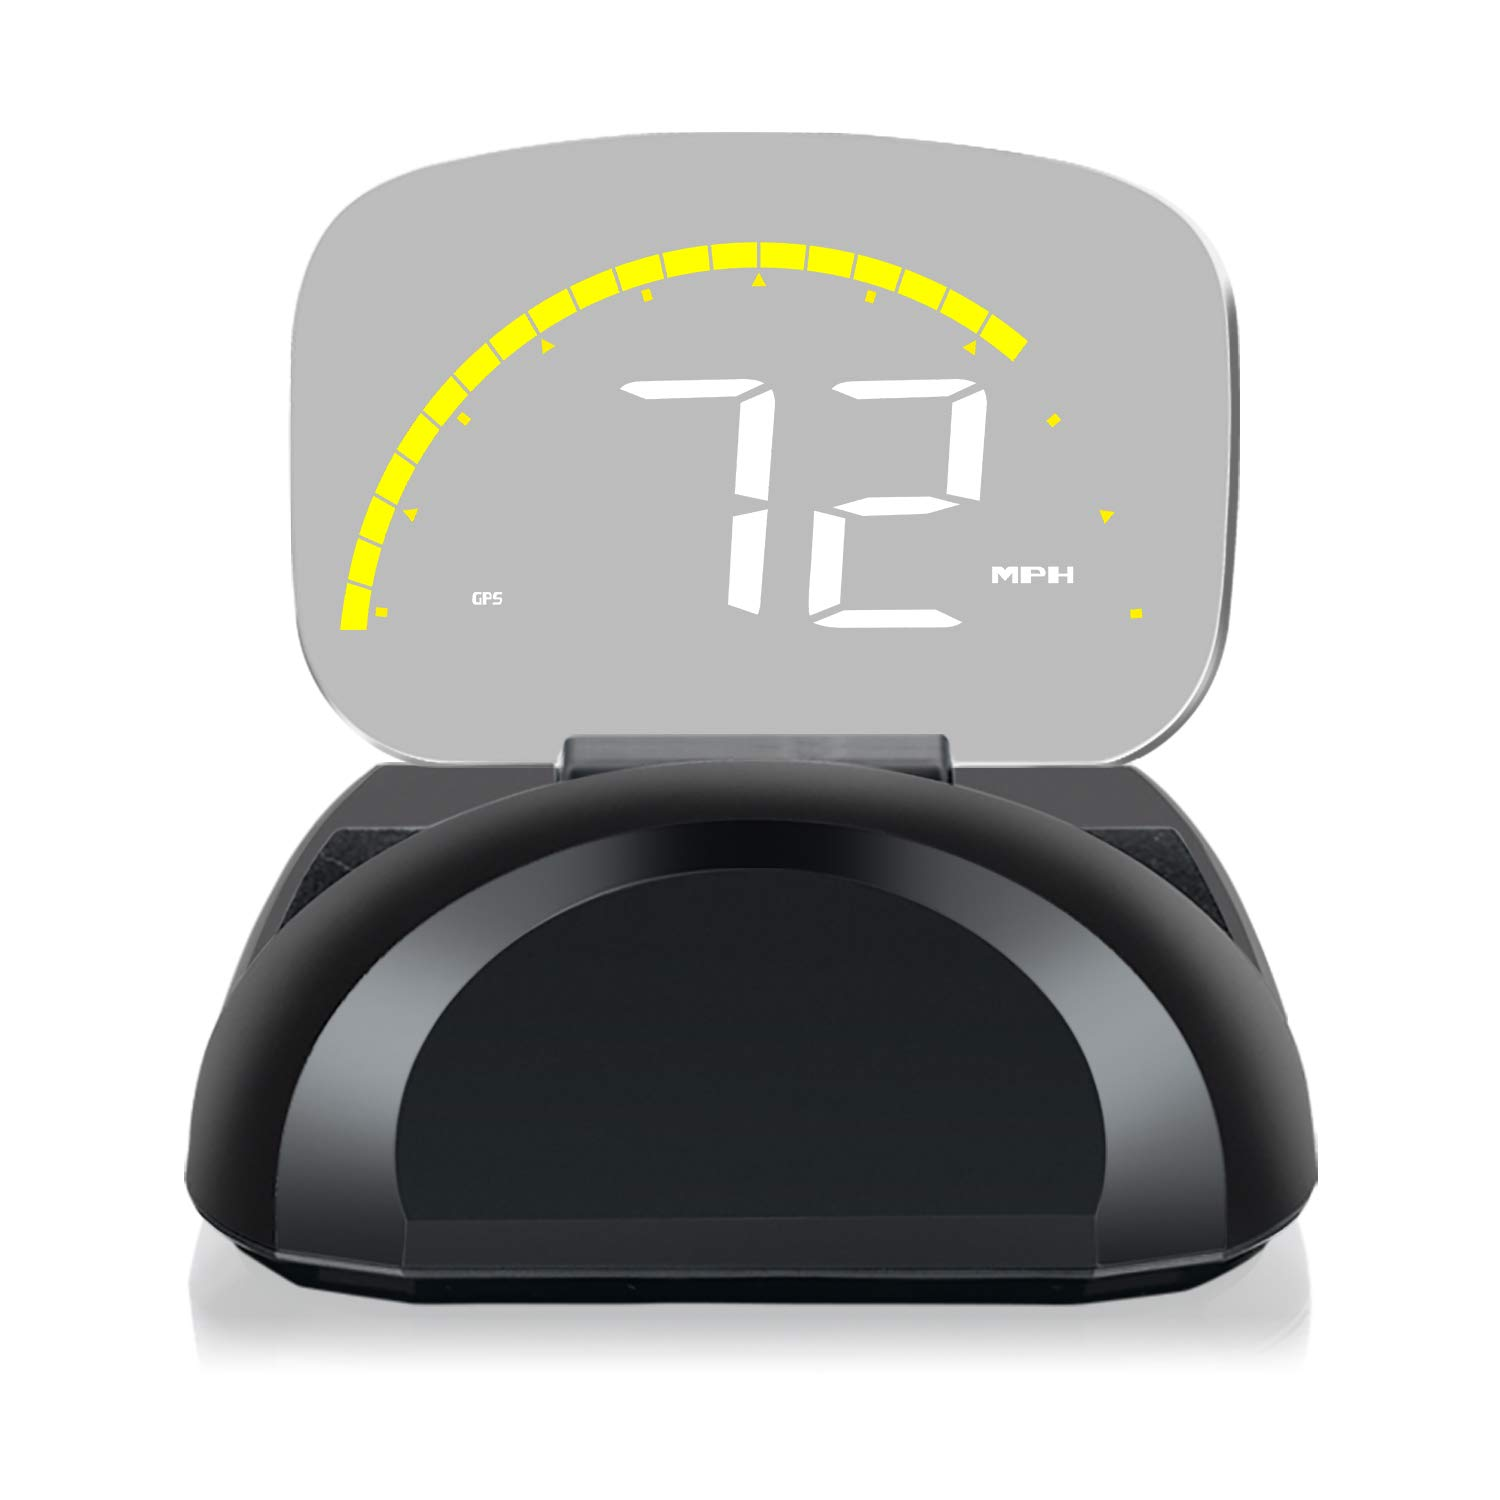 XYCING Car HUD OBD2 GPS Speedometer Dual Mode for All Vehicles, Heads Up Display Driving Data MPH Speed RPM Voltage Water Temperature Alarm Function